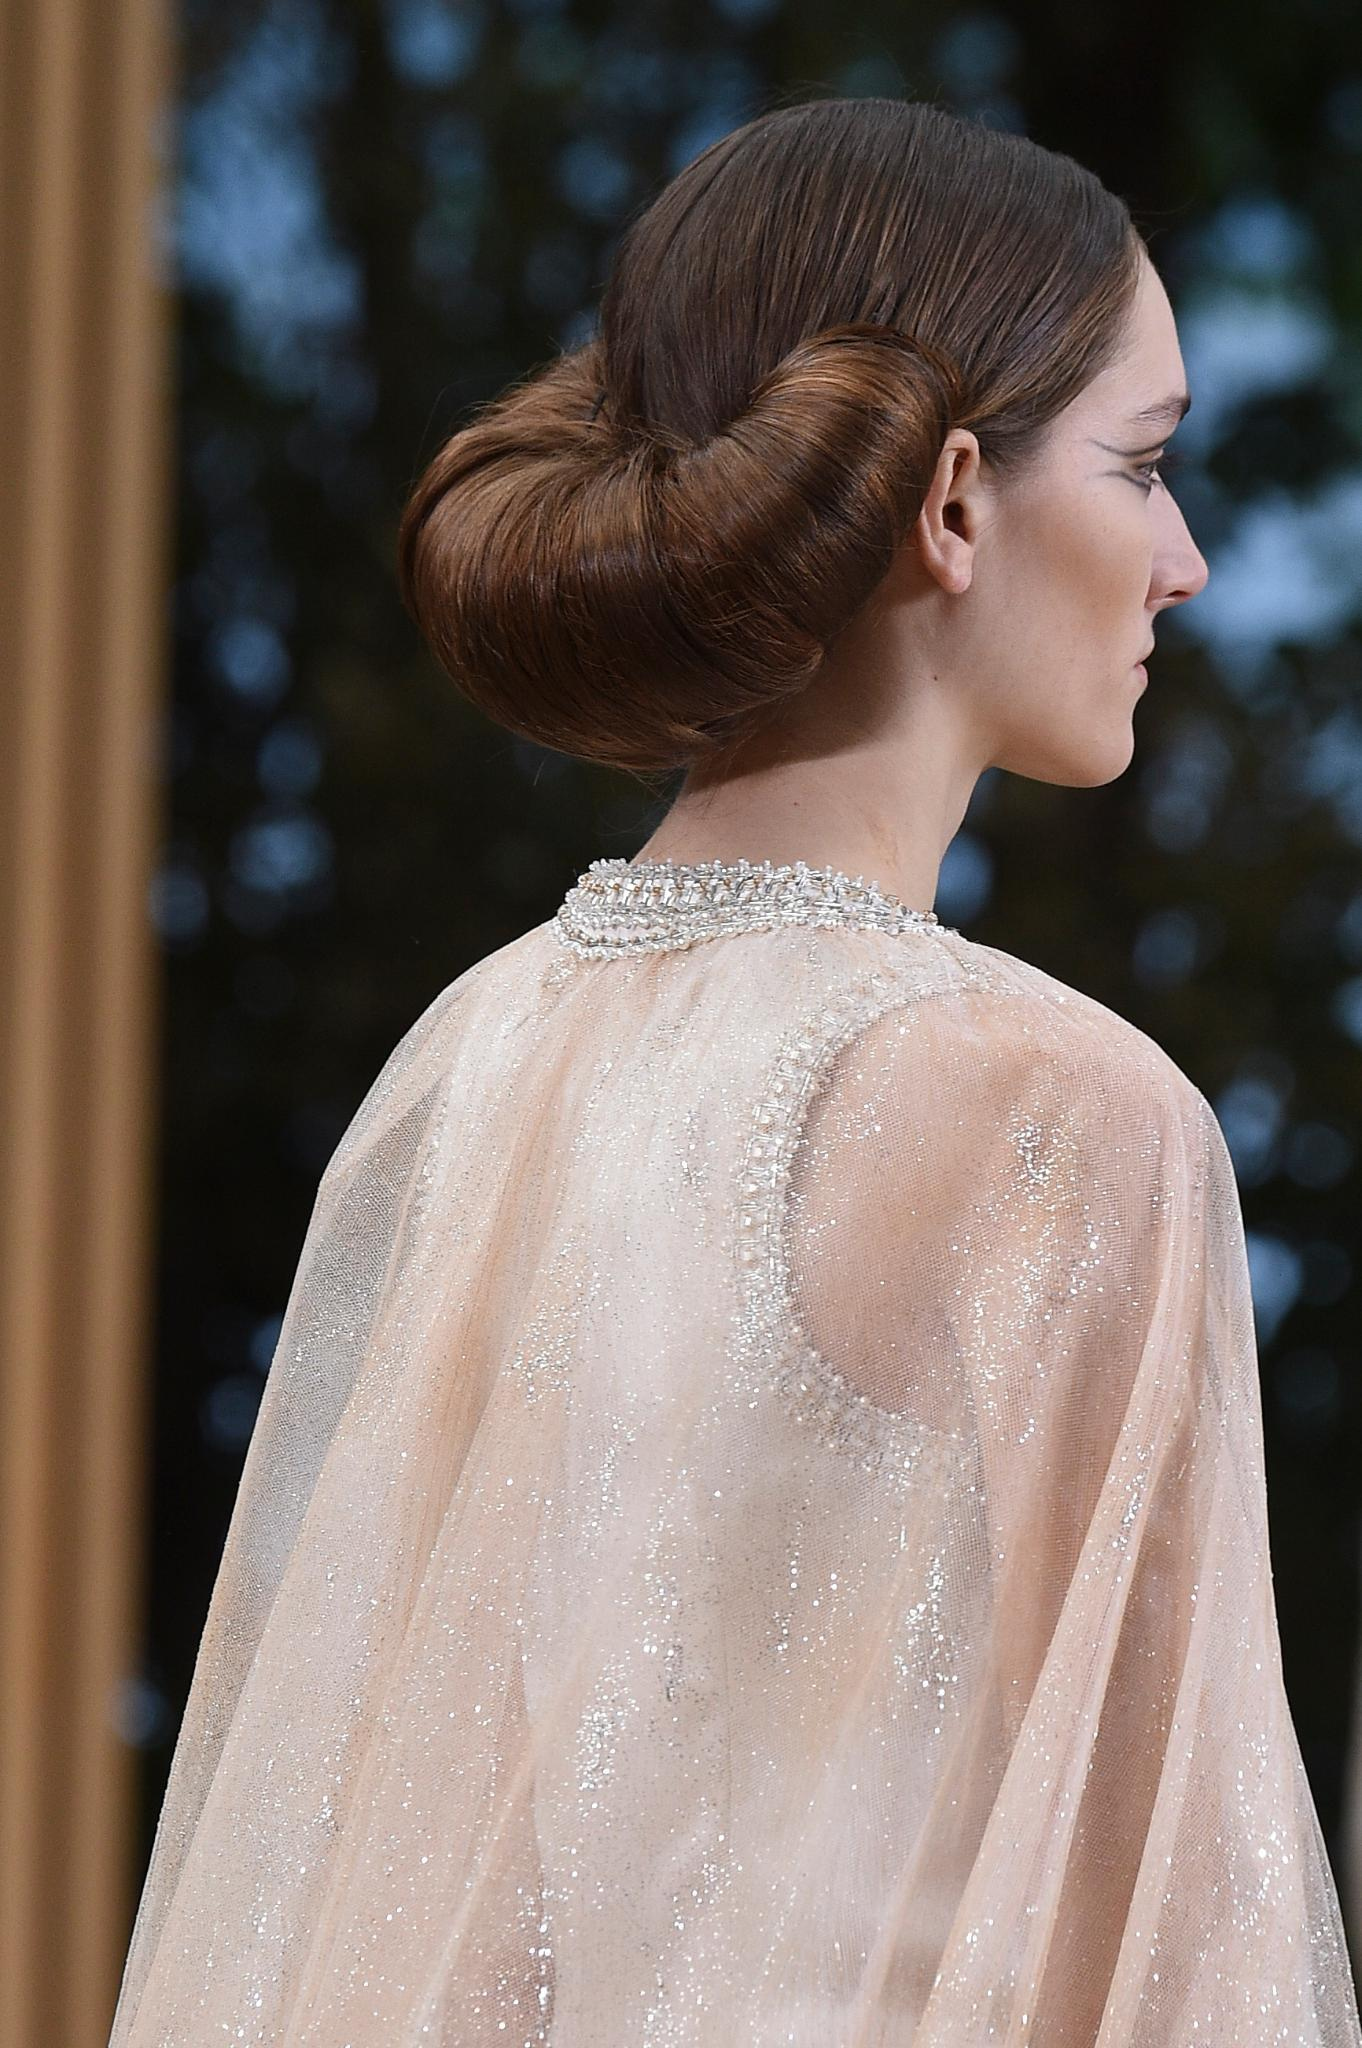 backshot of model on the chanel runway with a crossiant bun hairstyle